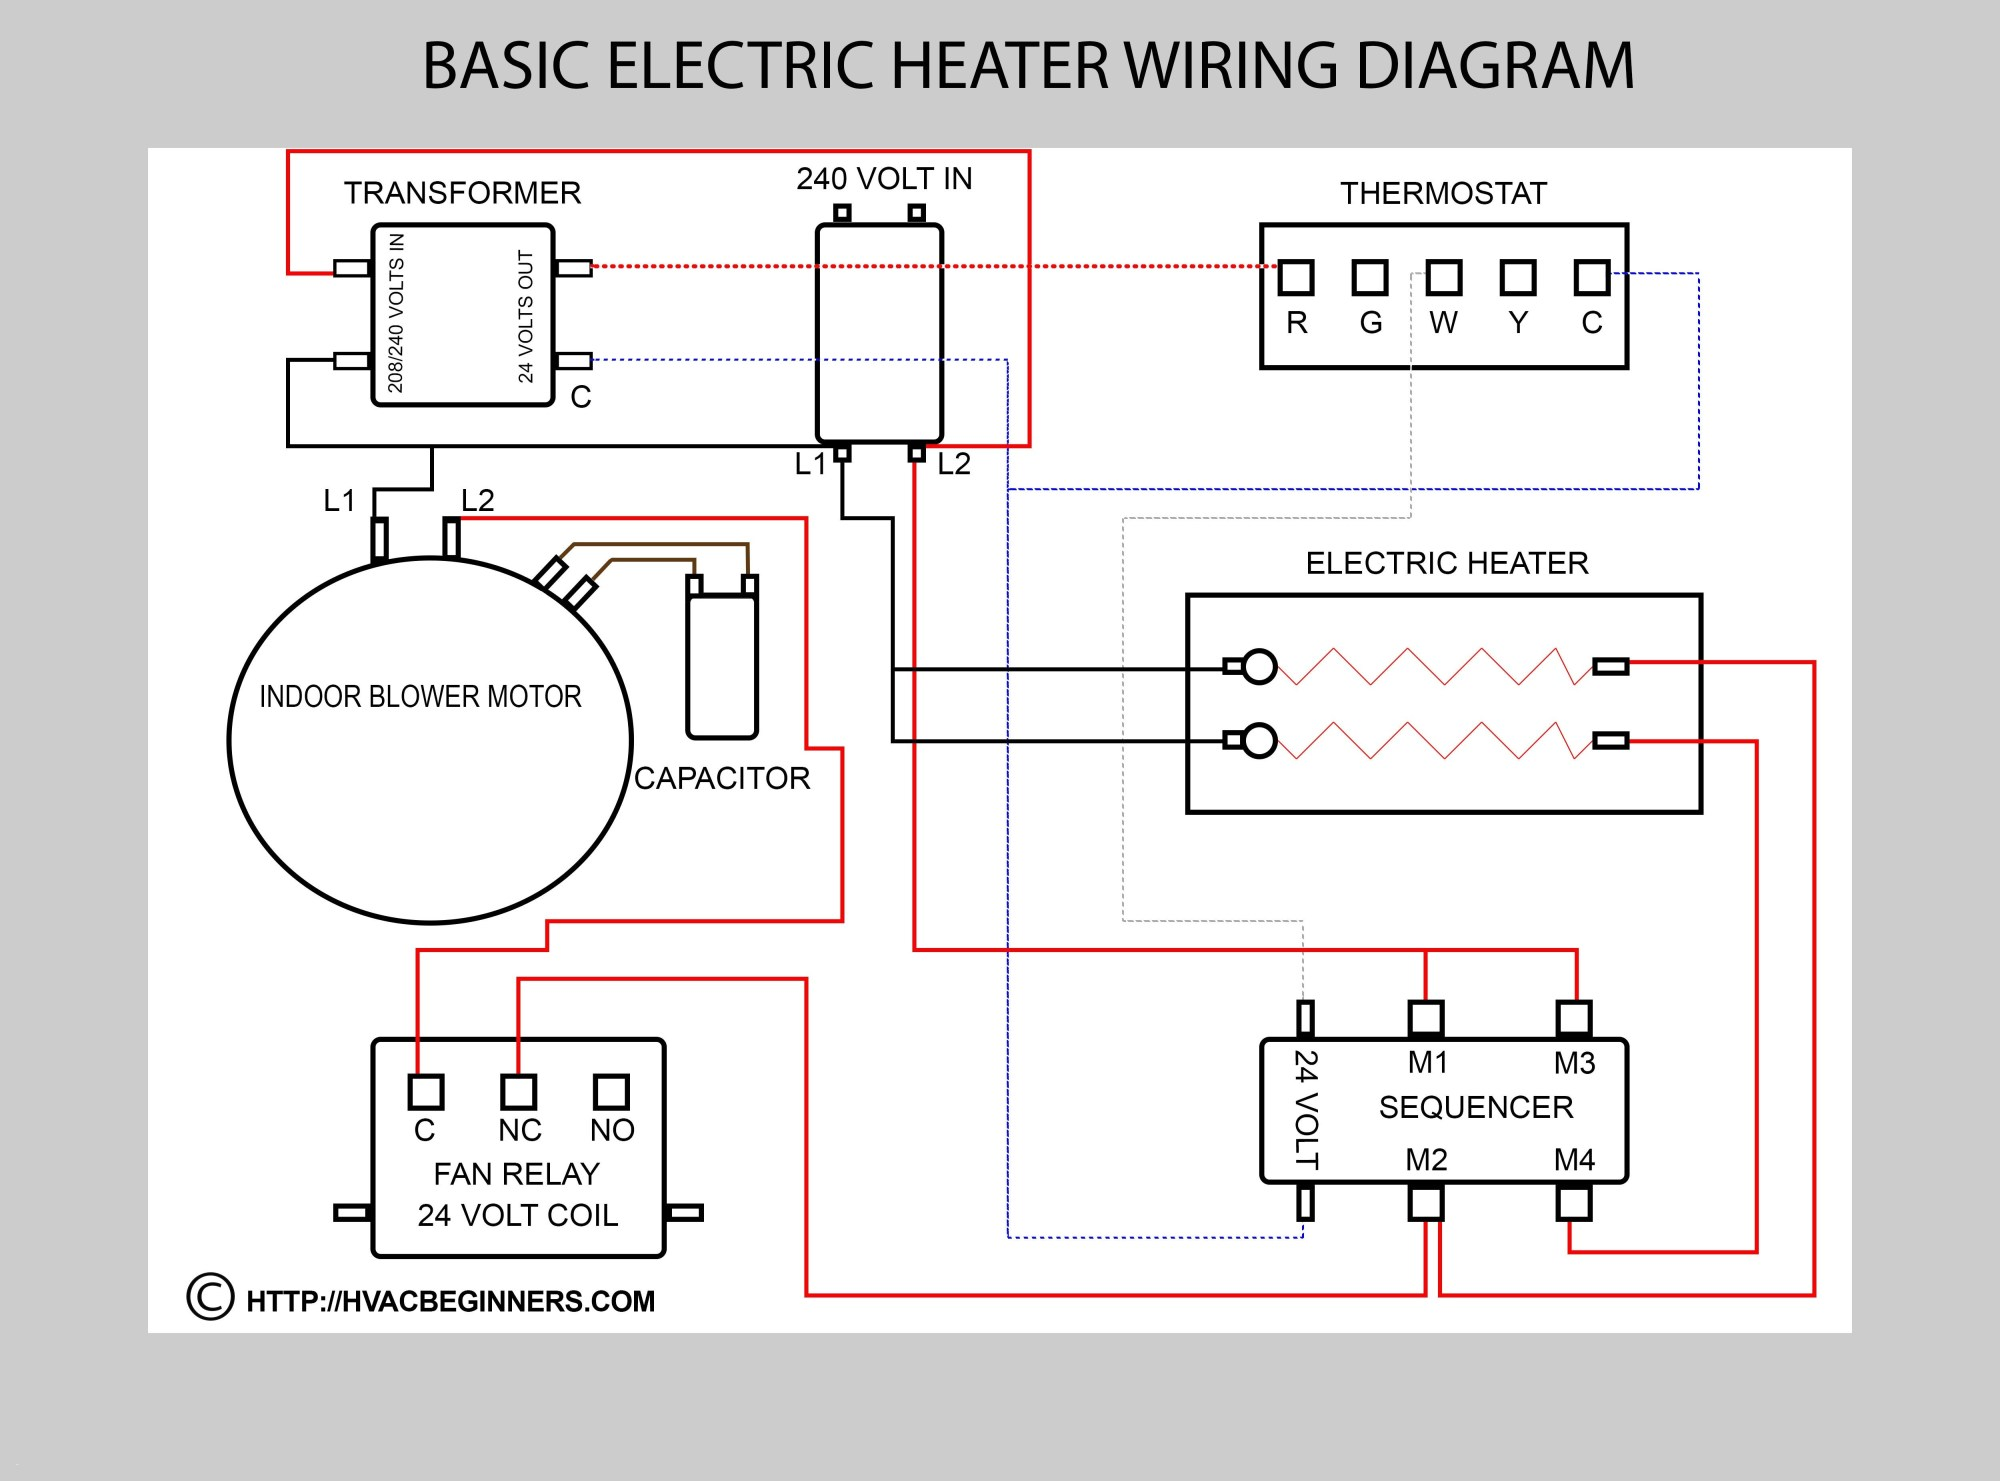 hight resolution of wiring 240 volt schematic wiring library water heater 220 volt wiring diagram wiring 220 volt ac